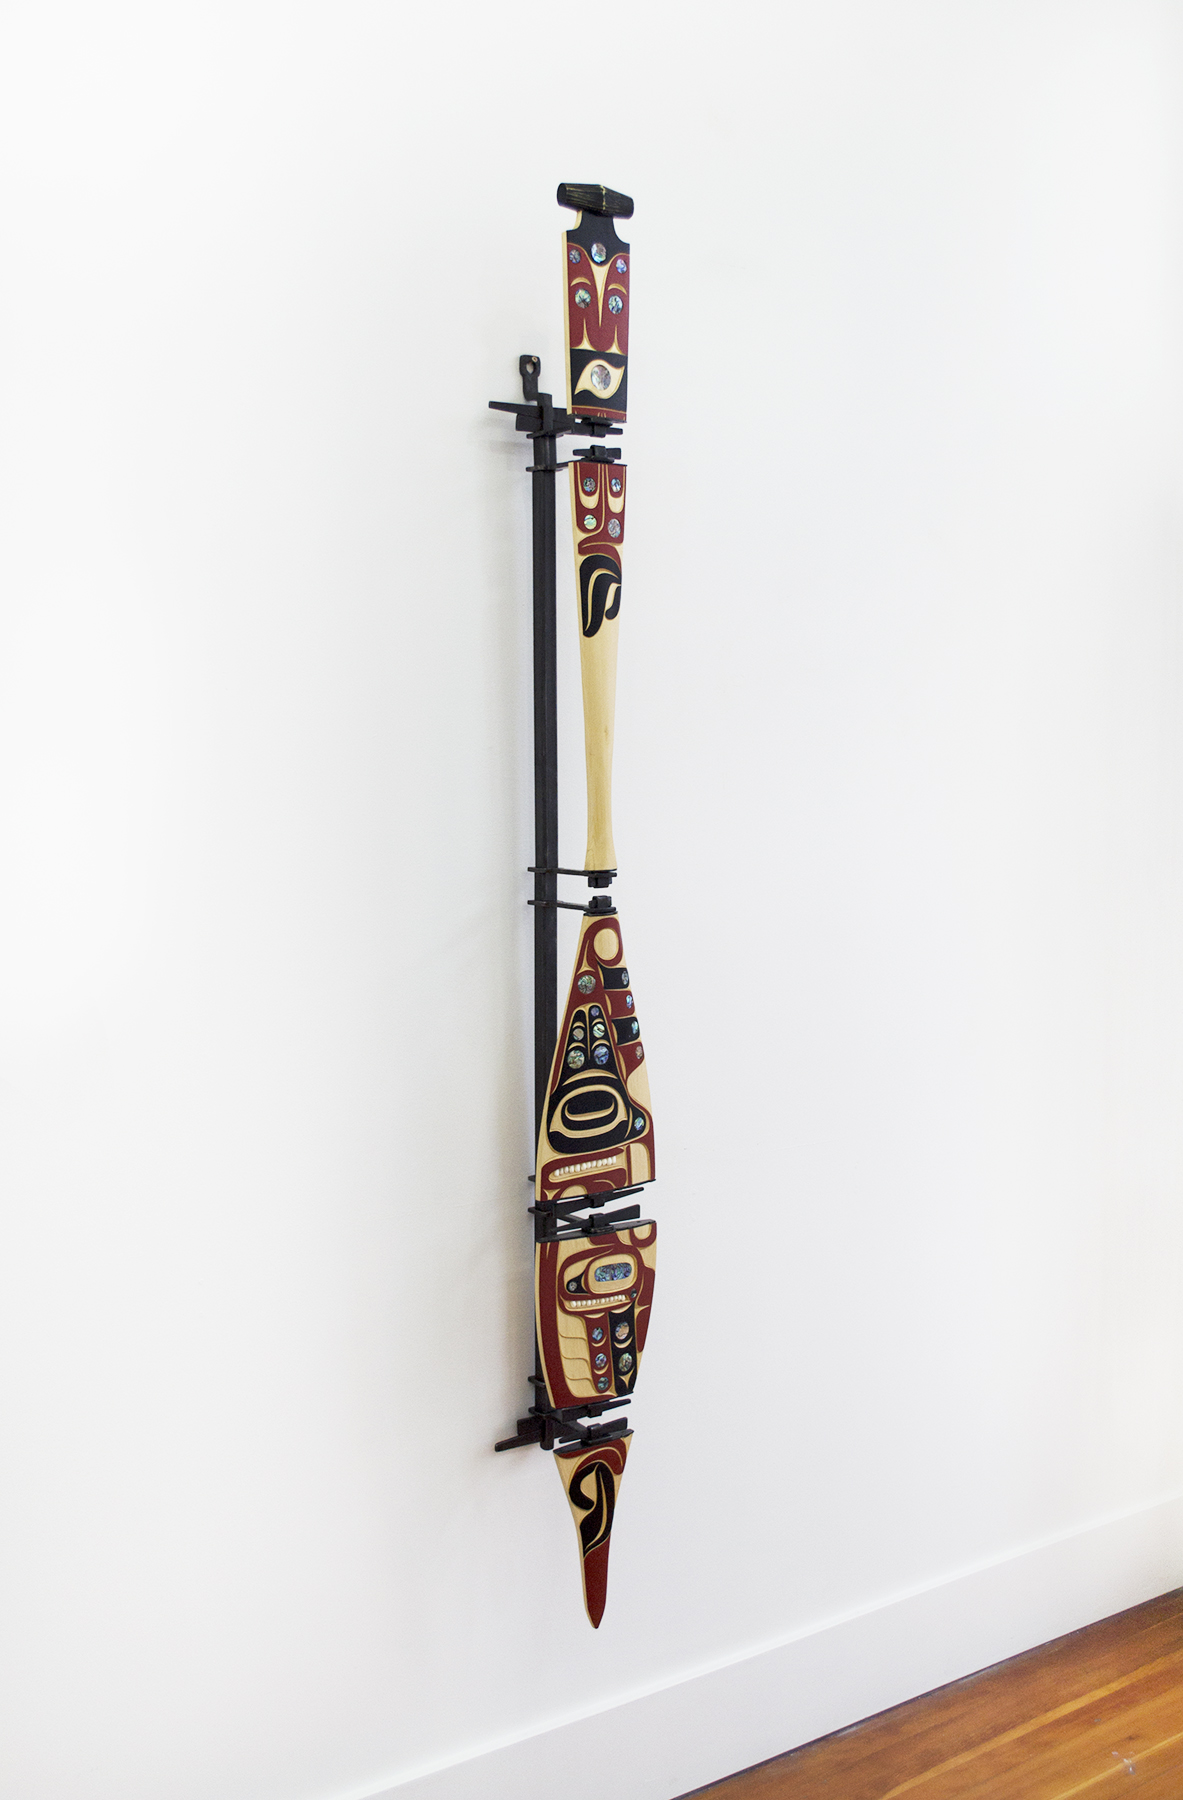 "Hummingbird Paddle (Deconstructed), 2018, Moy Sutherland (Nuu-chah-nulth), Yellow cedar, acrylic, abalone, operculum, iron, 60"" x 8"" x 6.5"", $7,600"